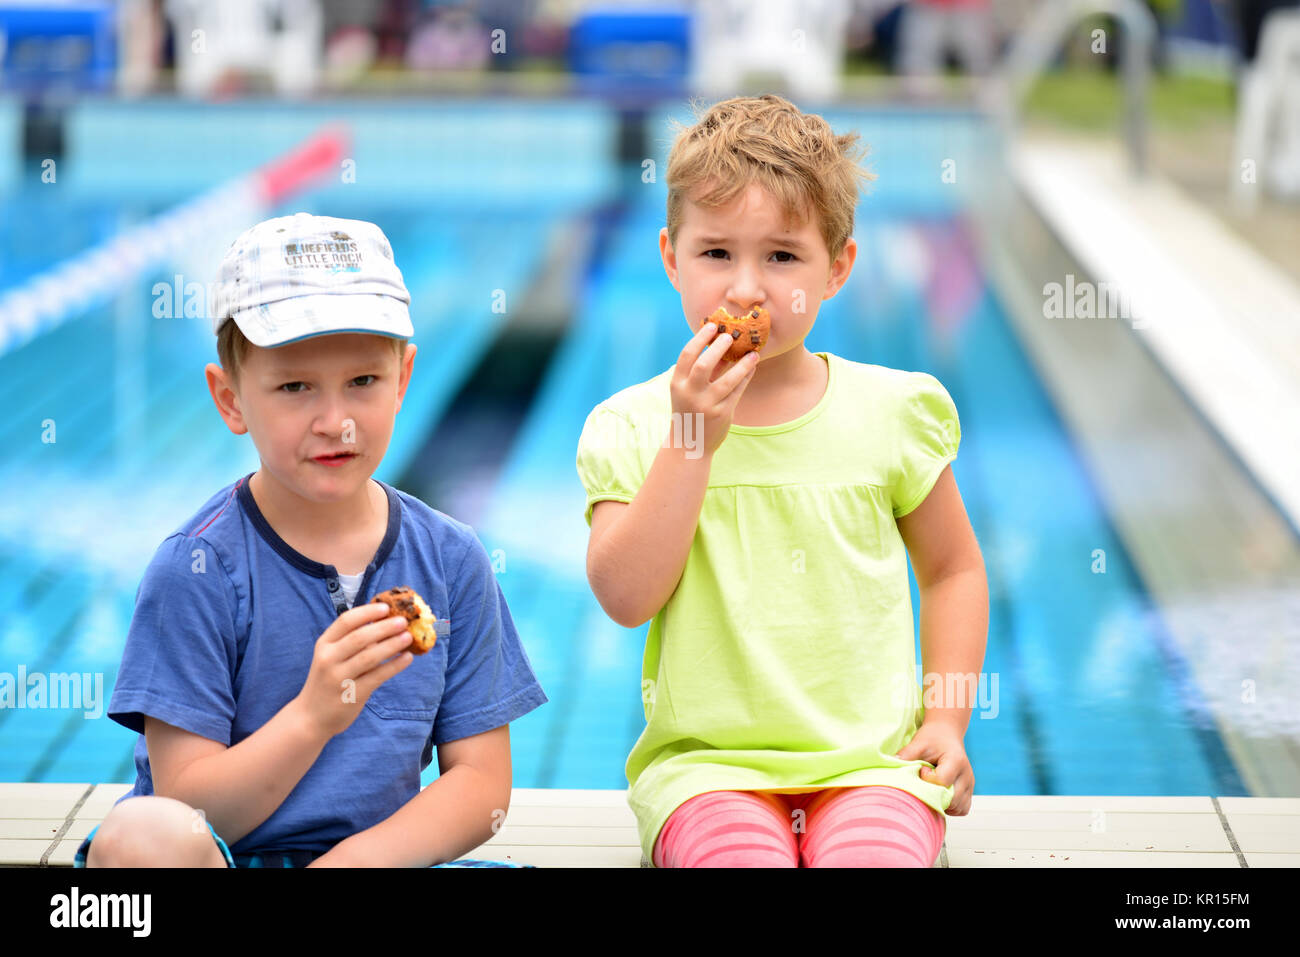 children at the pool - Stock Image